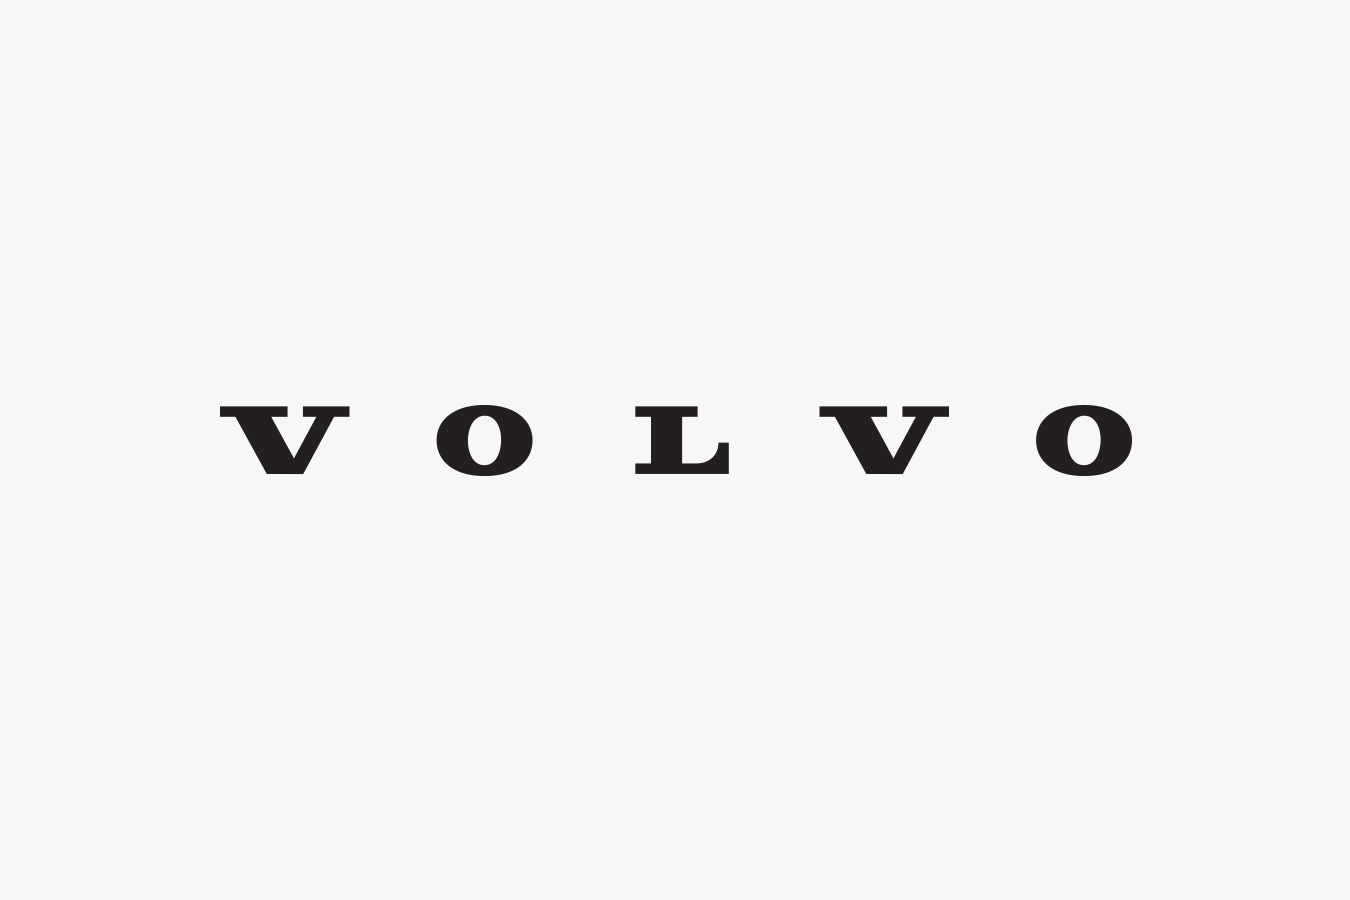 Volvo Logos - Iron Mark RGB 2014